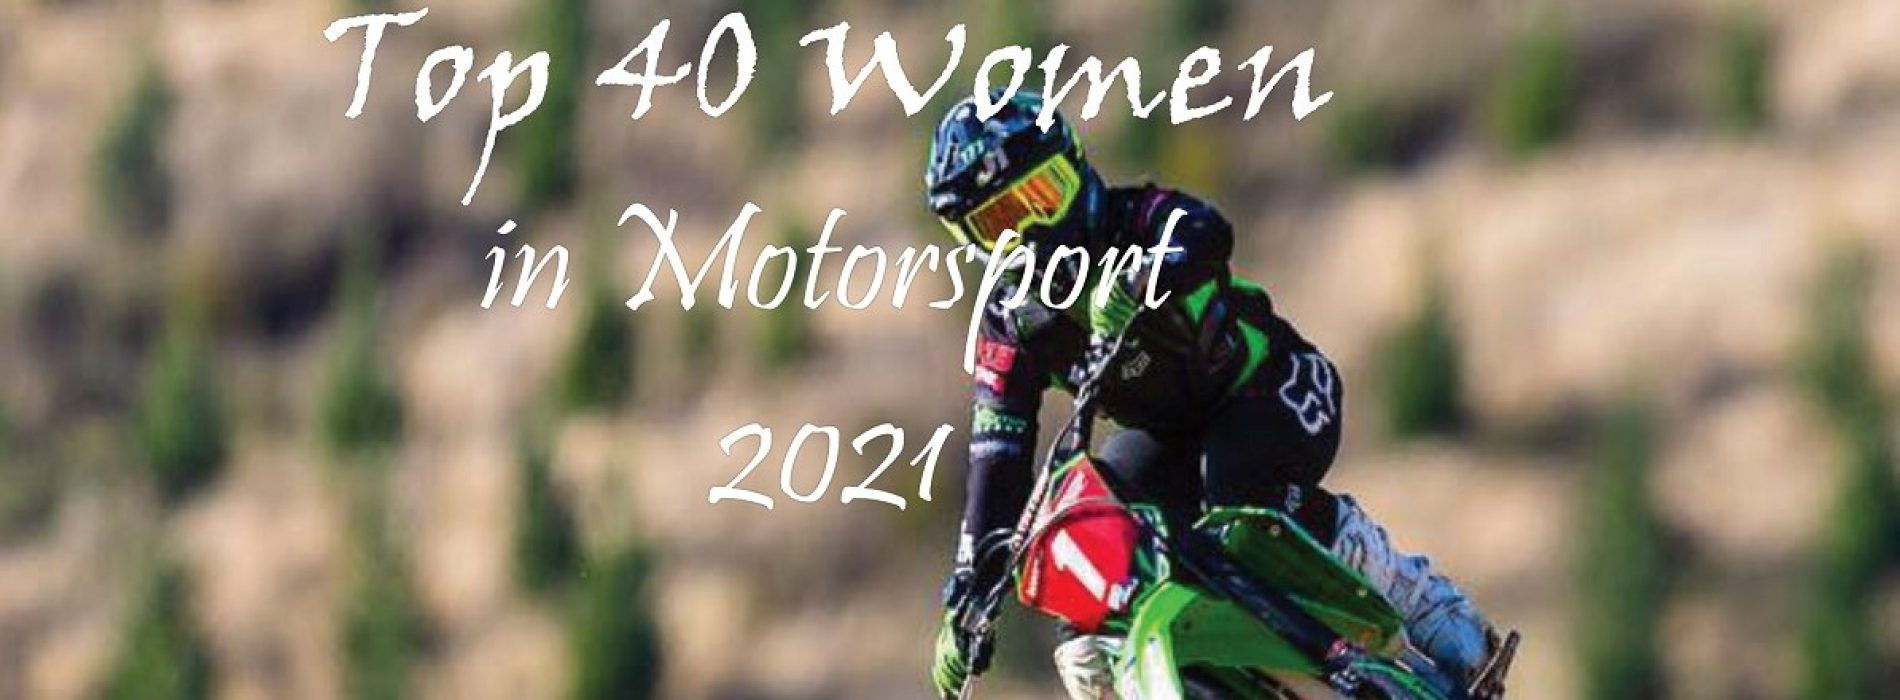 Top 40 Women in Motorsport 2021